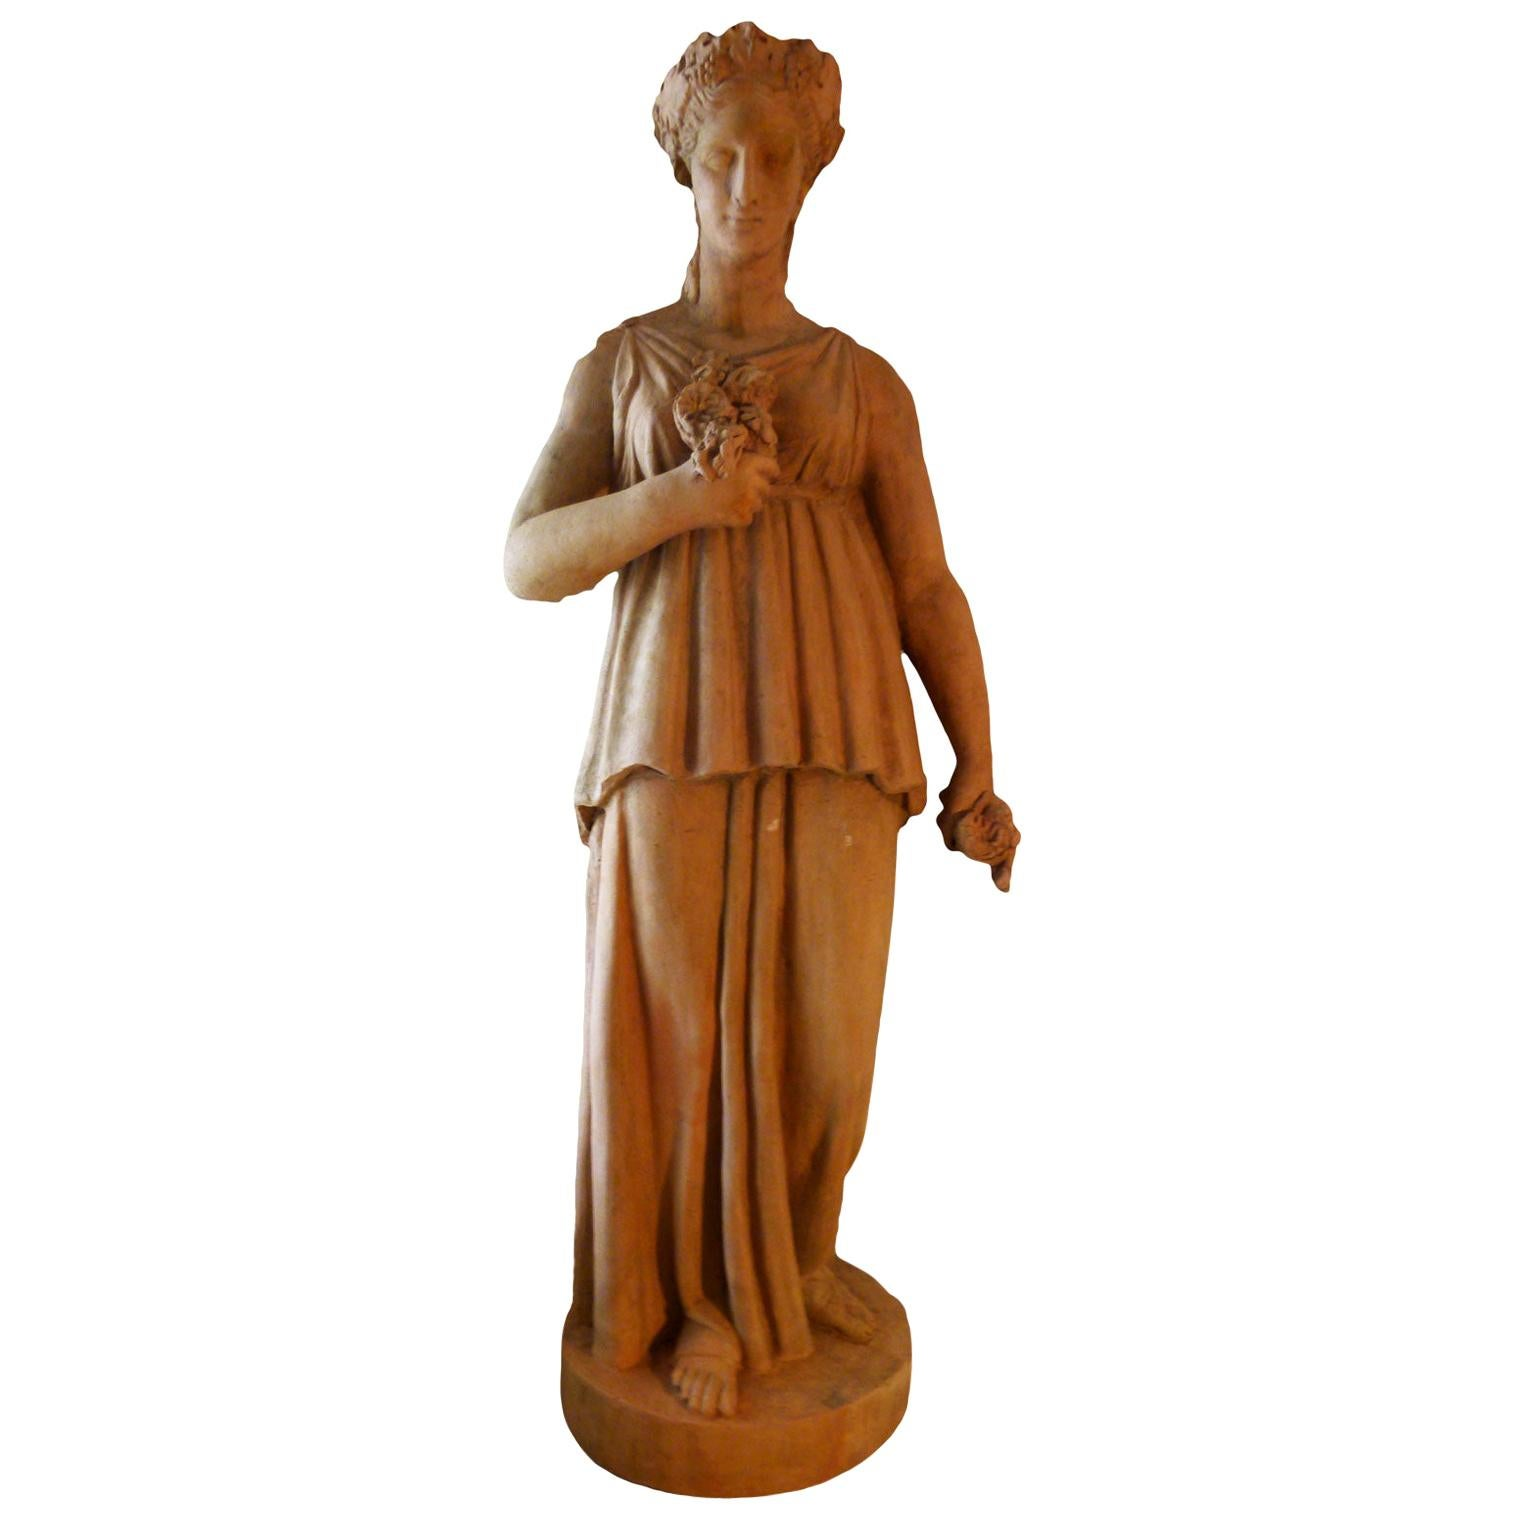 20th Century French Terracotta Statue, Neoclassical Greco-Roman Inspired